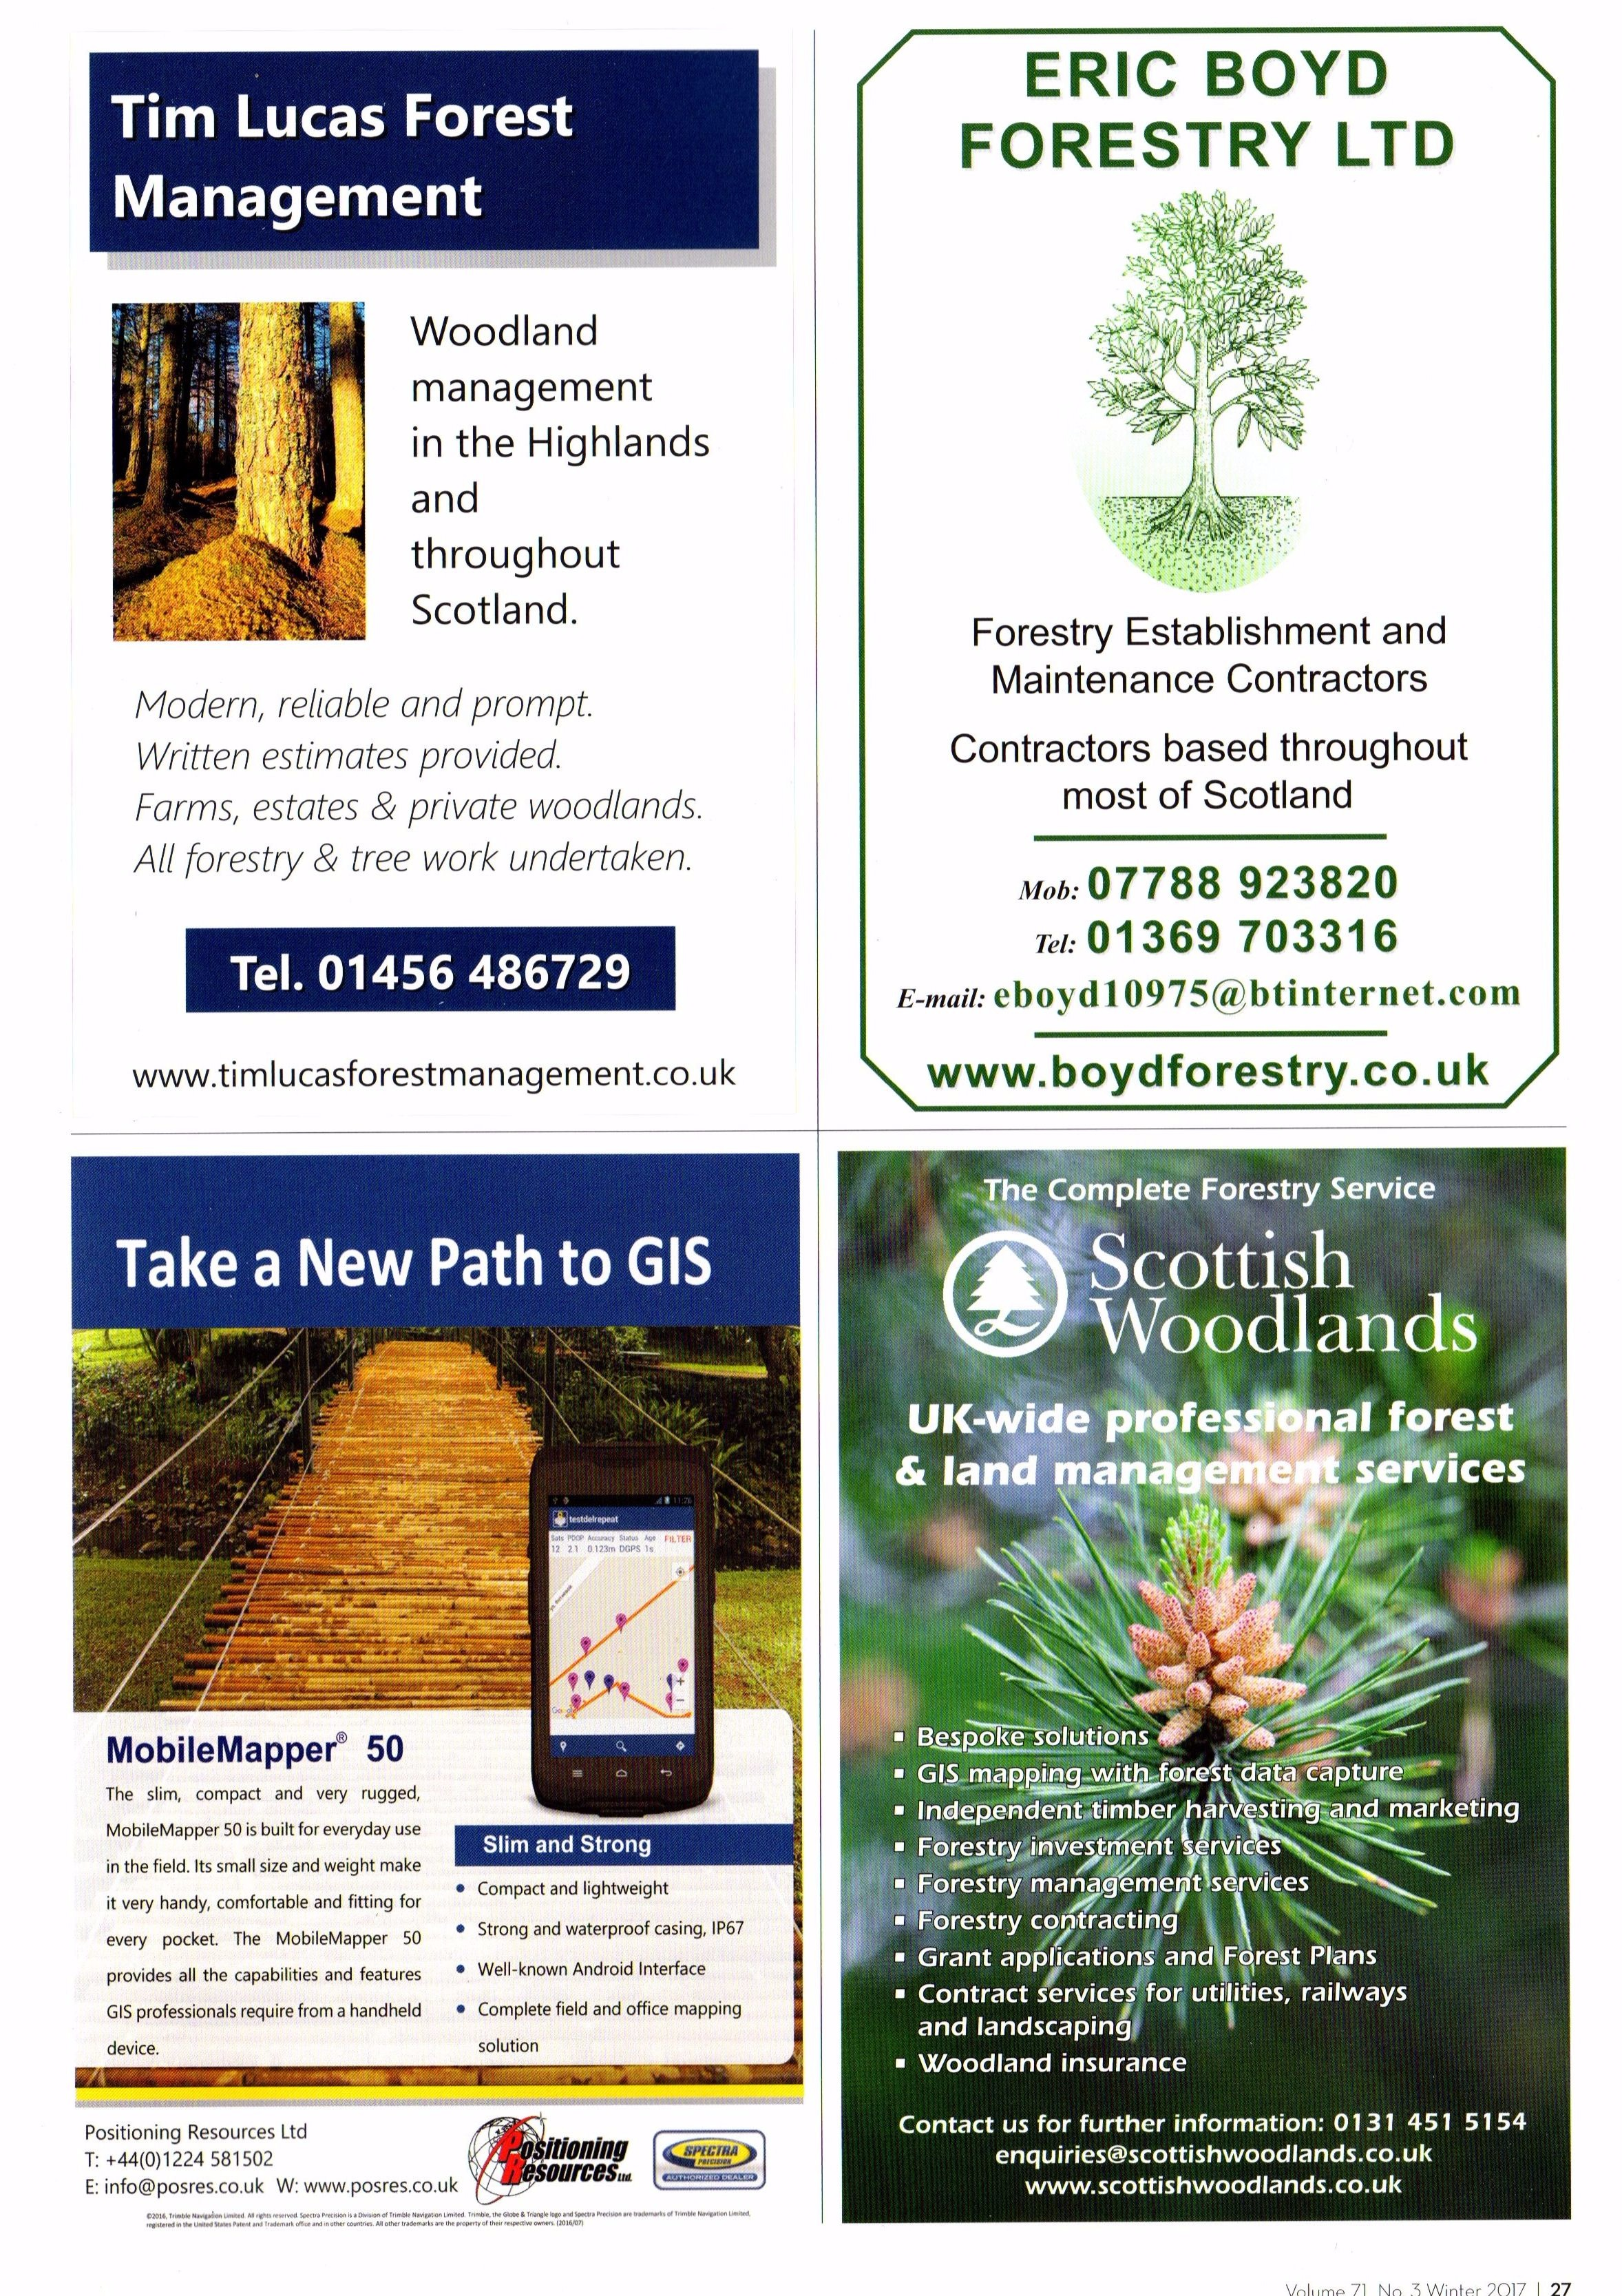 My advert in the current Scottish Forestry magazine.  I was very tempted to obscure the contact details of my competitors' adverts in this image, but I thought that would make me look churlish....